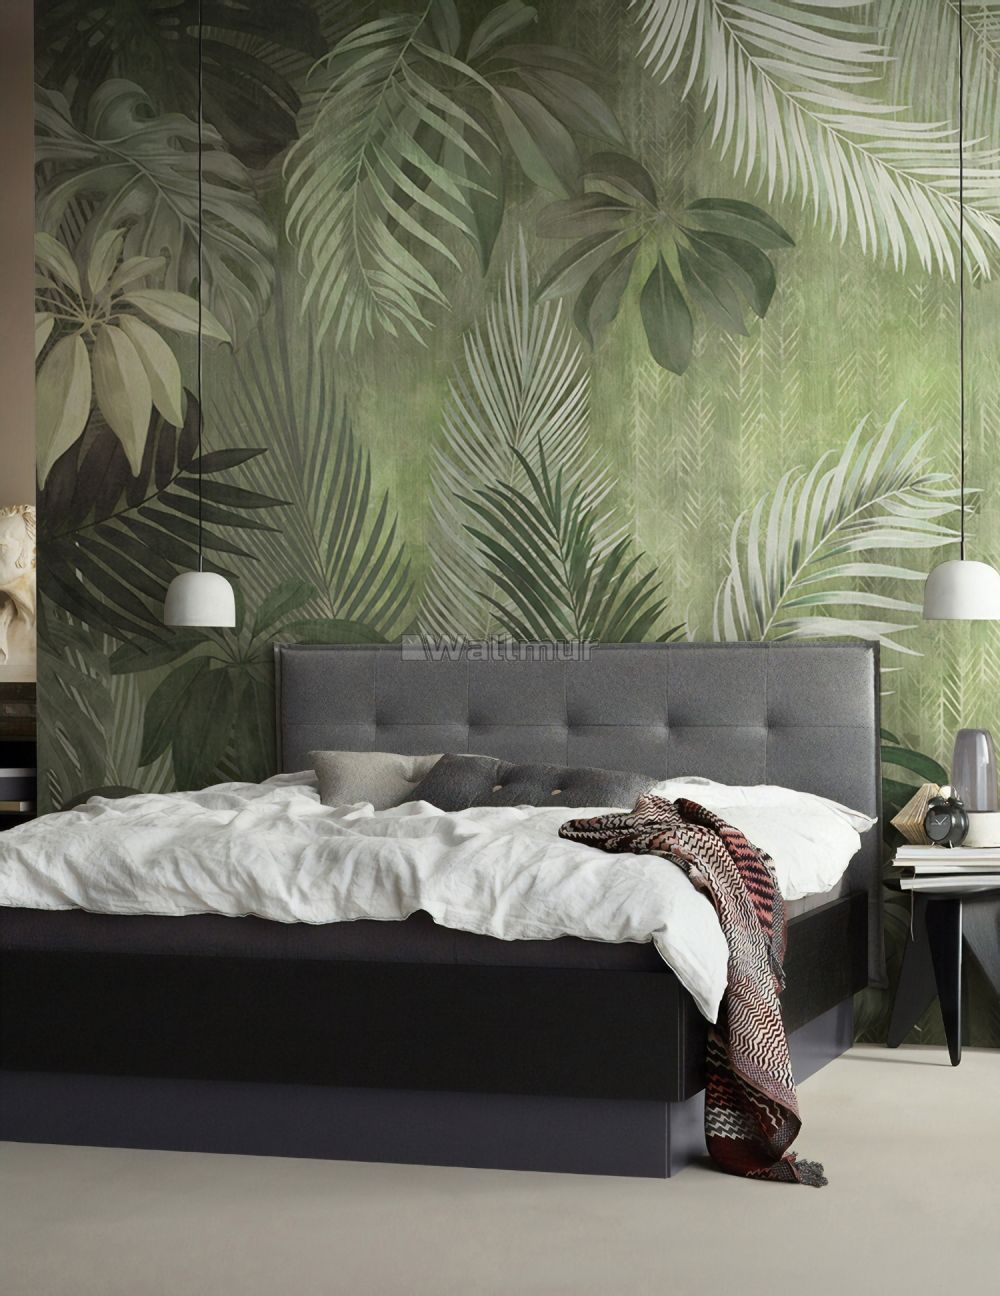 Monochrome Palm Leaf Wallpaper Mural